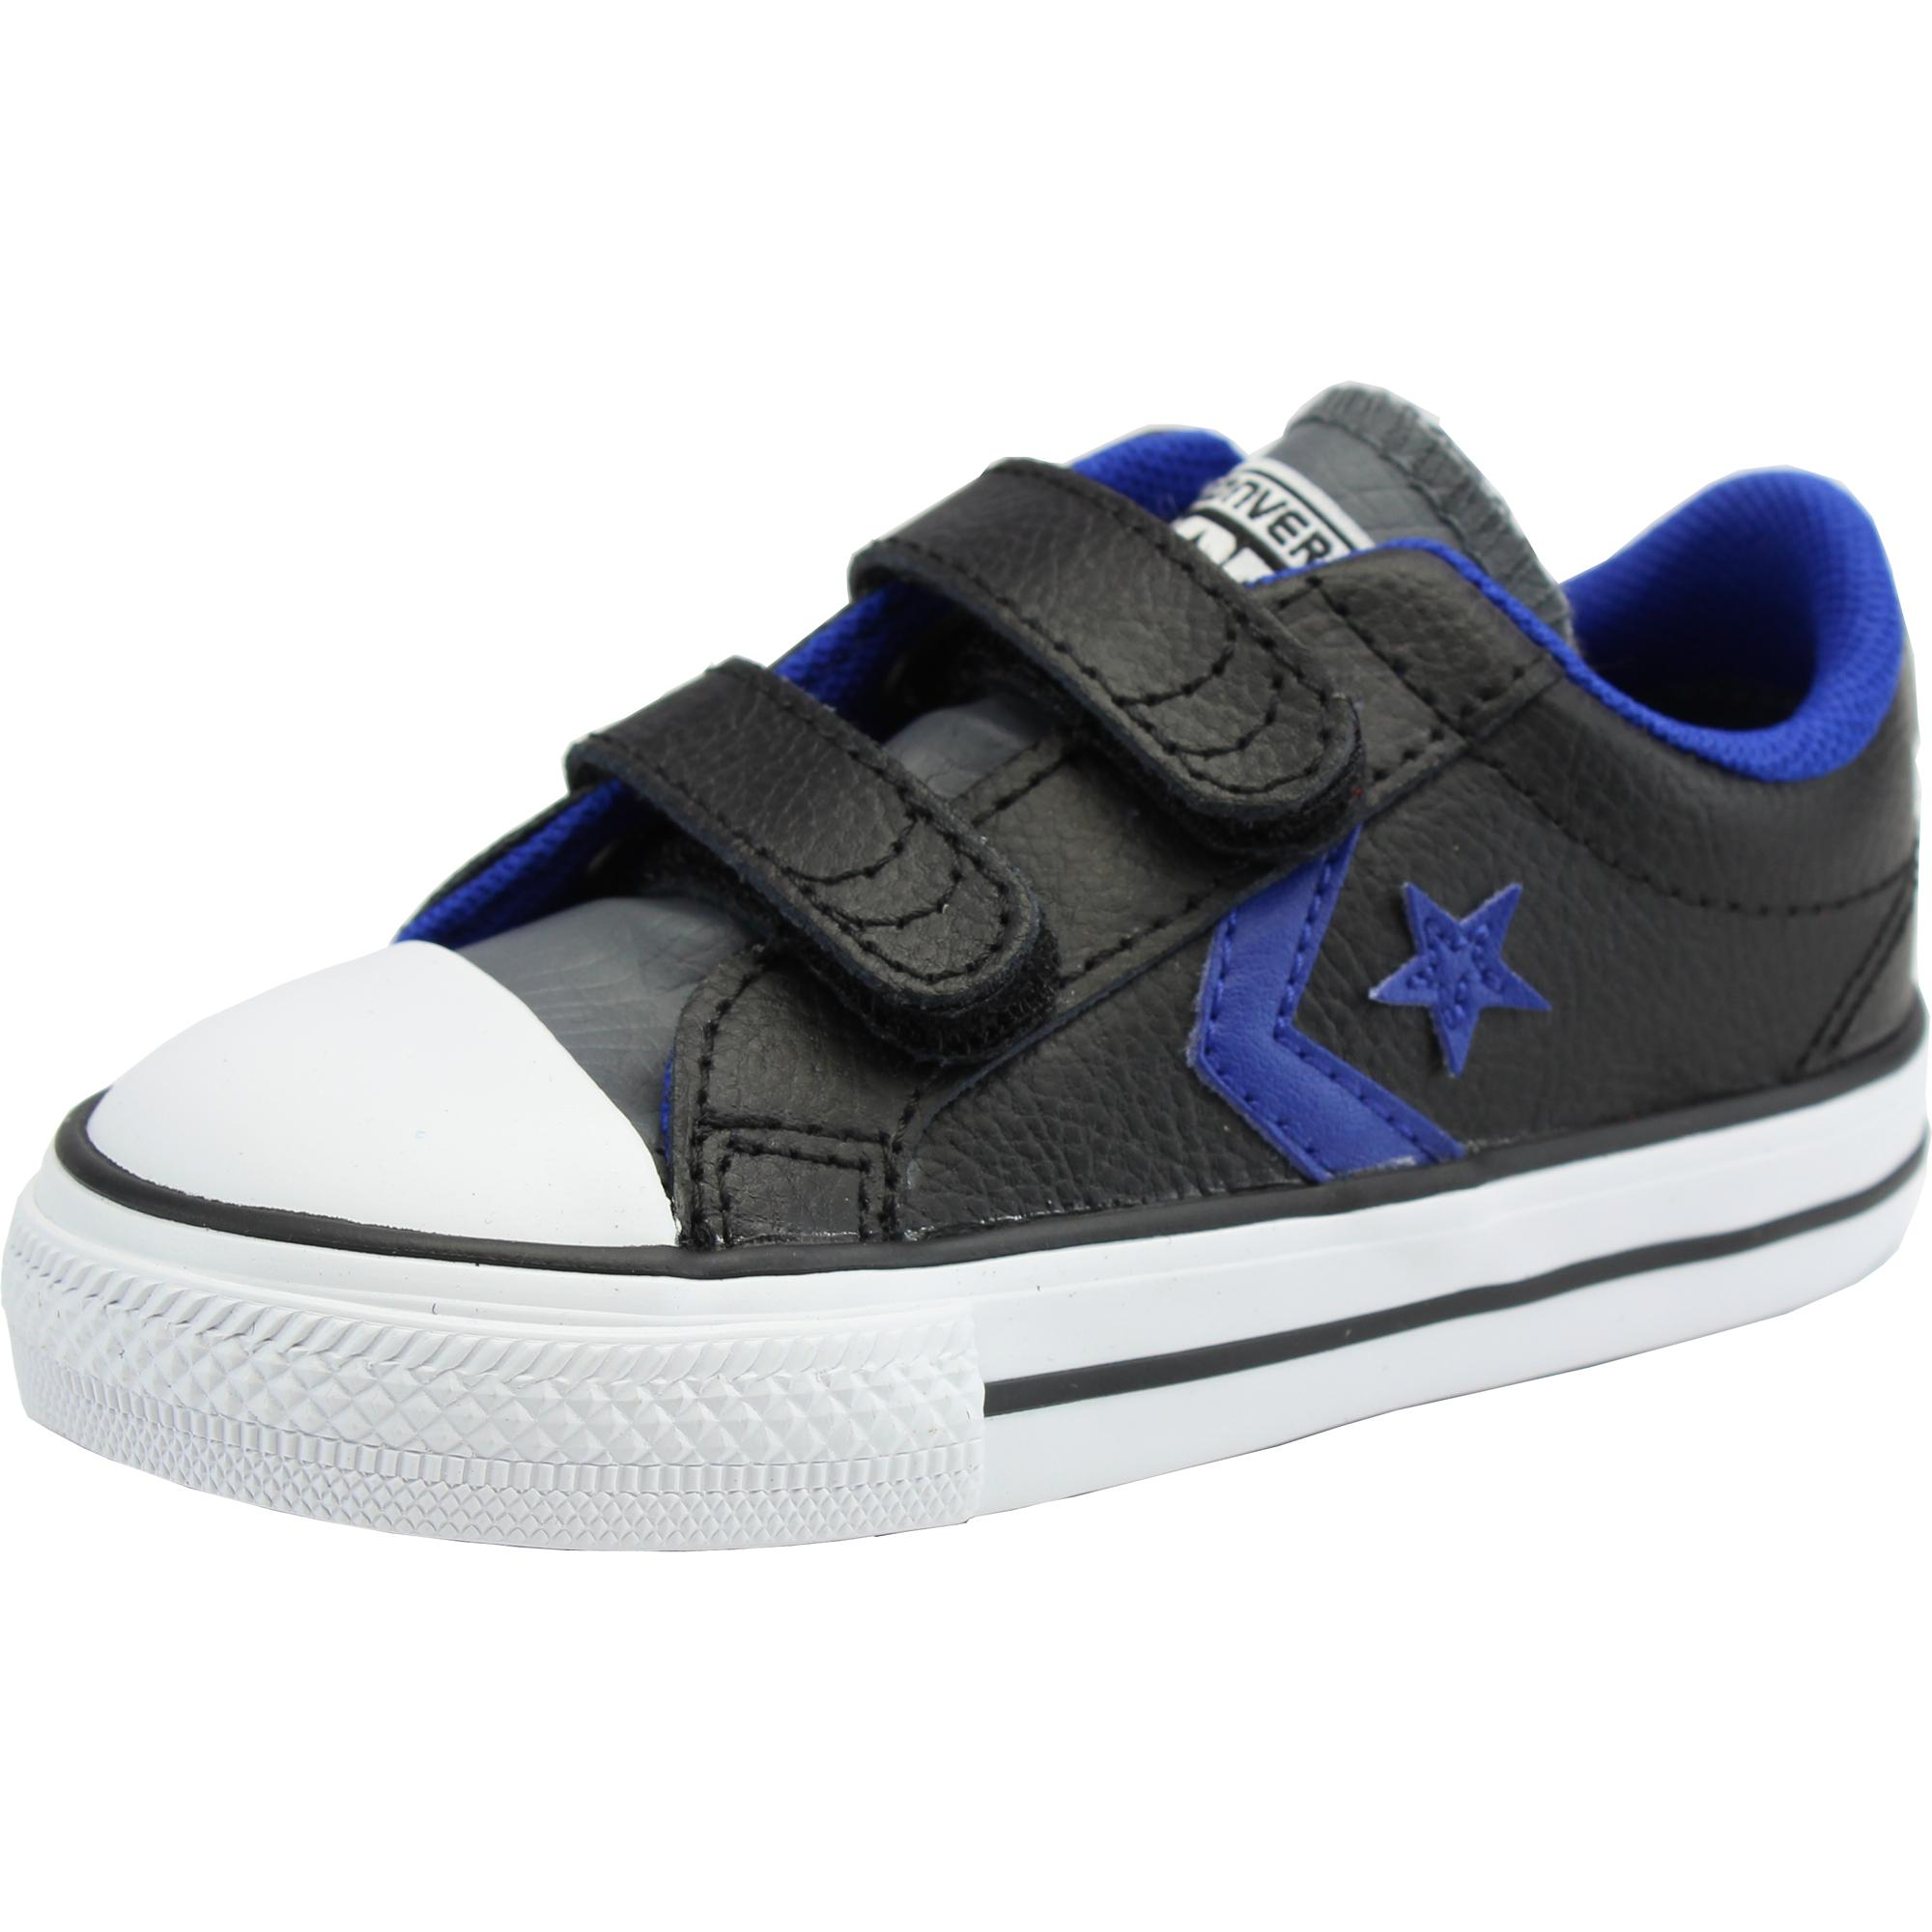 Converse Star Player EV OX Infants Toddlers Babies Casual Retro Trainers Black